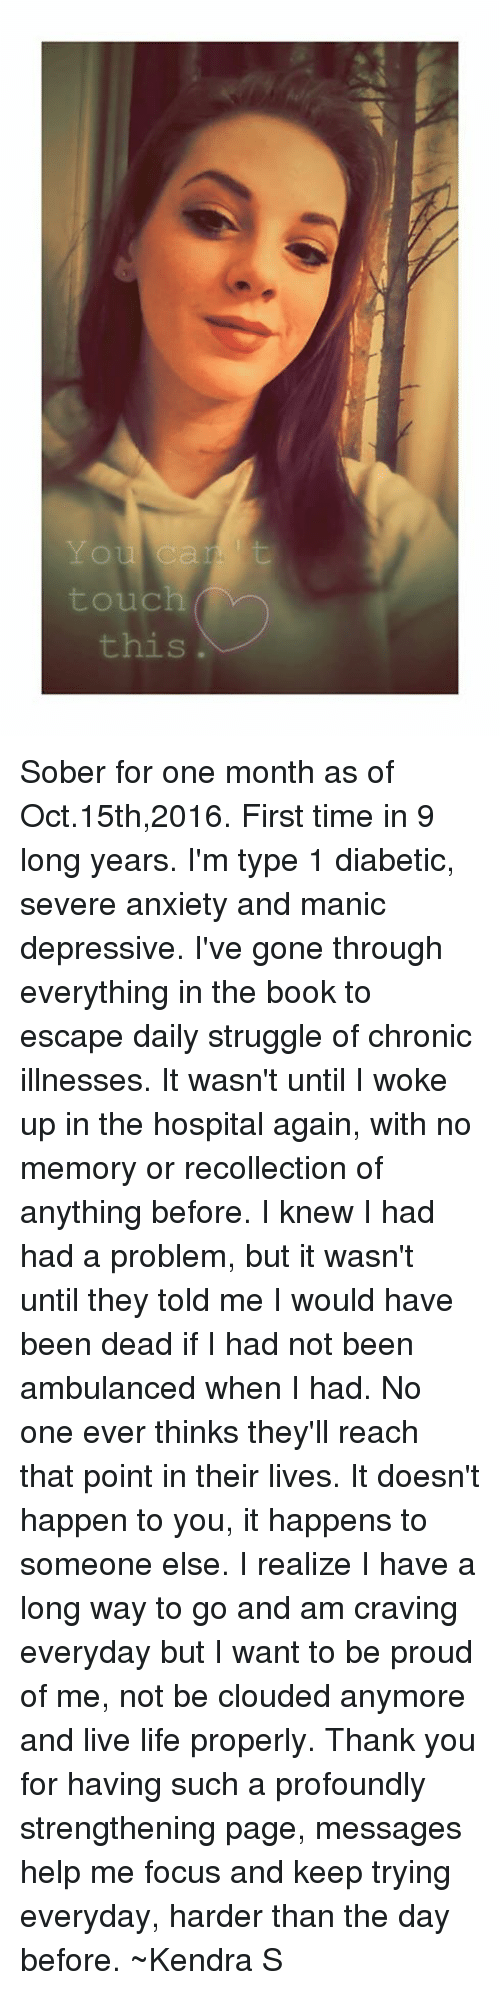 Books, Life, and Memes: You can : t  01  touch  this Sober for one month as of Oct.15th,2016. First time in 9 long years.  I'm type 1 diabetic, severe anxiety and manic depressive. I've gone through everything in the book to escape daily struggle of chronic illnesses. It wasn't until I woke up in the hospital again, with no memory or recollection of anything before. I knew I had had a problem, but it wasn't until they told me I would have been dead if I had not been ambulanced when I had. No one ever thinks they'll reach that point in their lives. It doesn't happen to you, it happens to someone else. I realize I have a long way to go and am craving everyday but I want to be proud of me, not be clouded anymore and live life properly. Thank you for having such a profoundly strengthening page, messages help me focus and keep trying everyday, harder than the day before.  ~Kendra S